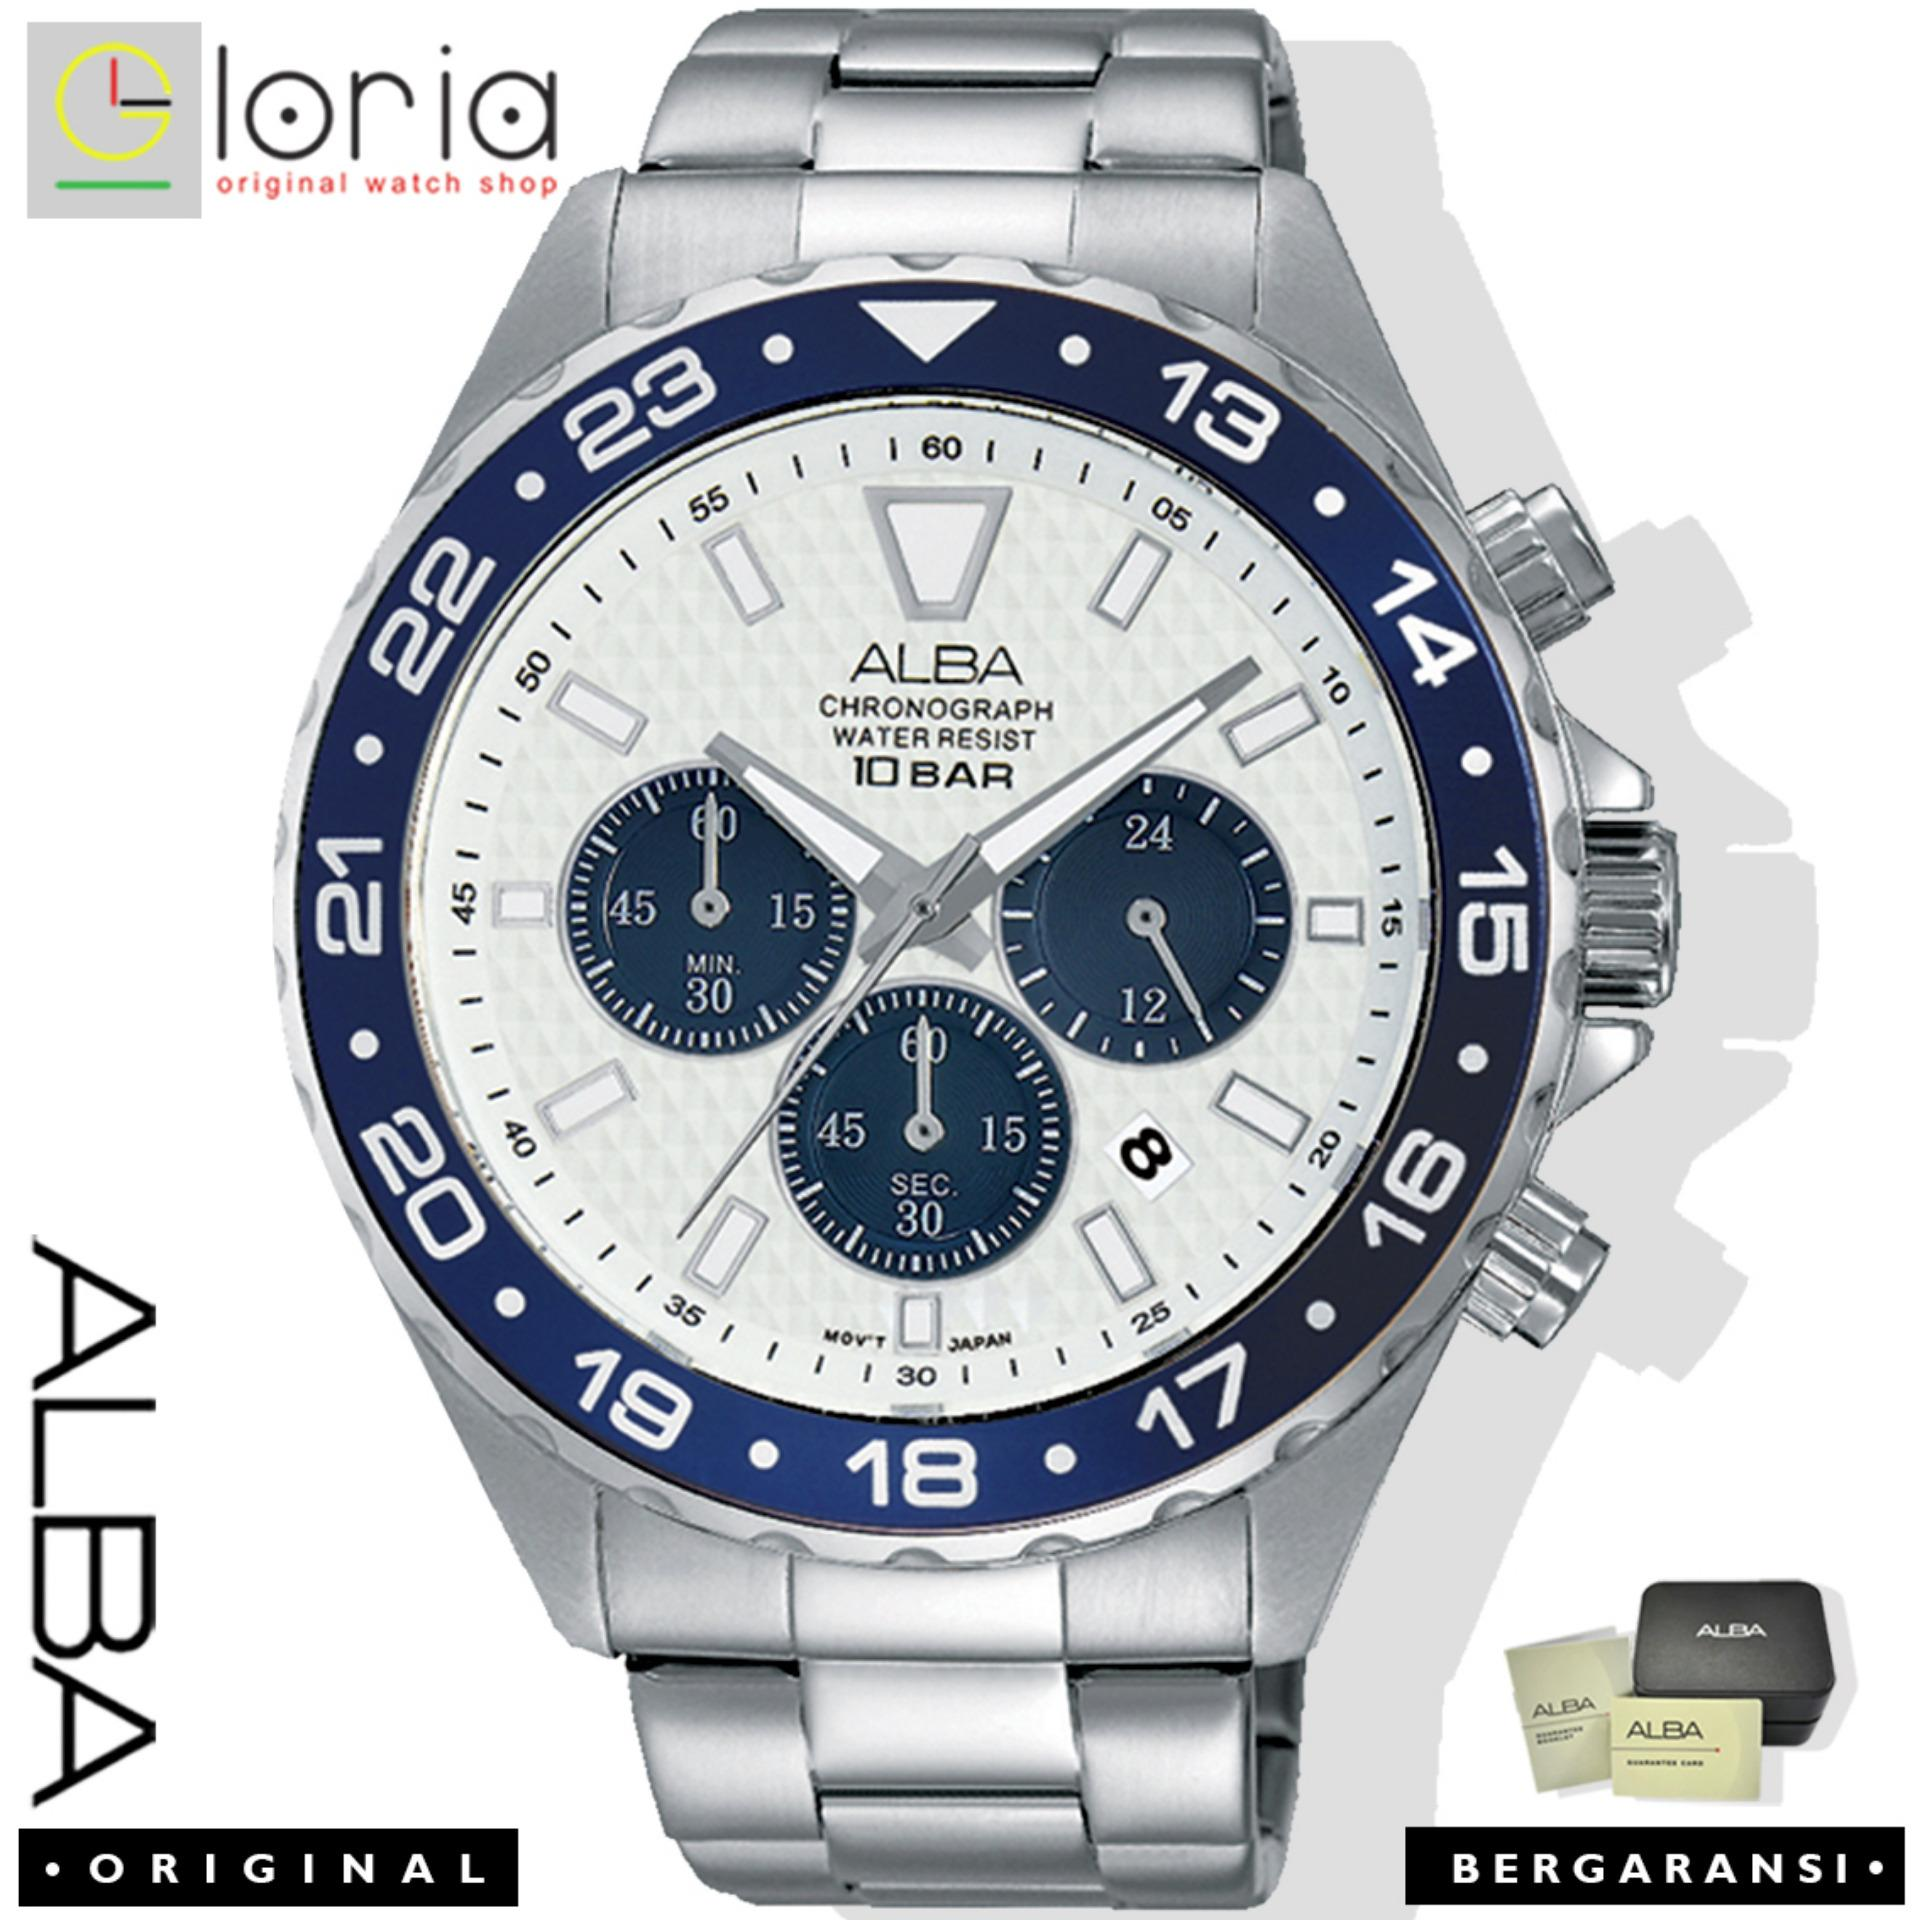 Alba AT39 Chronograph Jam Tangan Pria Tali  Kulit Quartz Movement / Stainless Steel